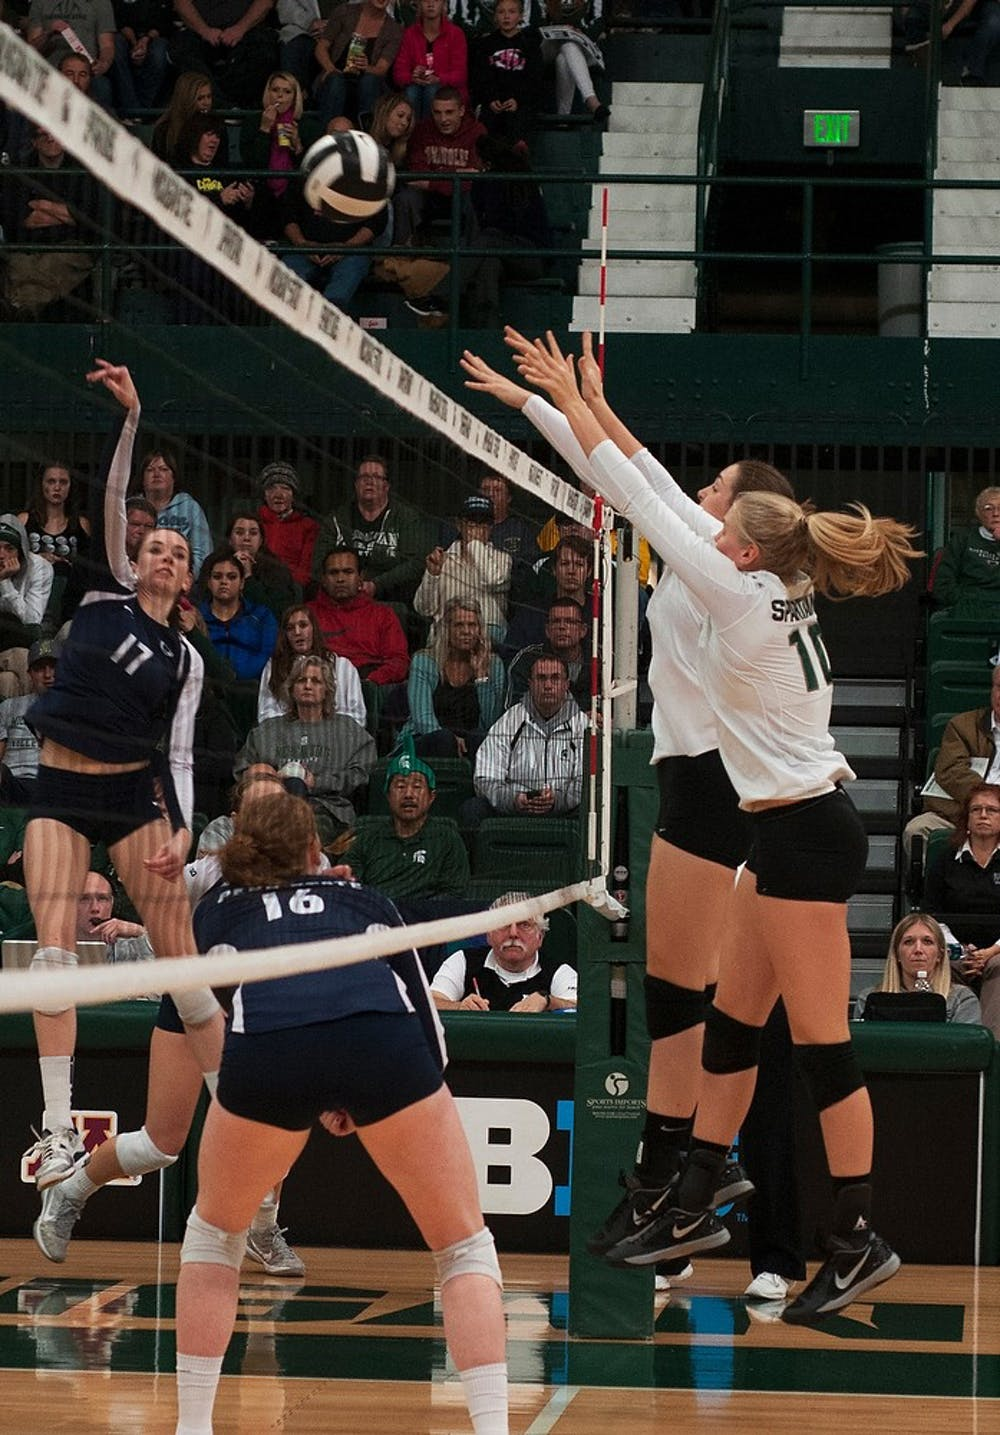 """<p>Senior middle blocker Kelsey Kuipers, left, and freshman middle blocker Allyssah Fitterer, right, block the ball Nov. 2, 2013, at Jenison Field House. <span class=""""caps"""">MSU</span> lost to Penn State, 3-0. Margaux Forster/The State News</p>"""